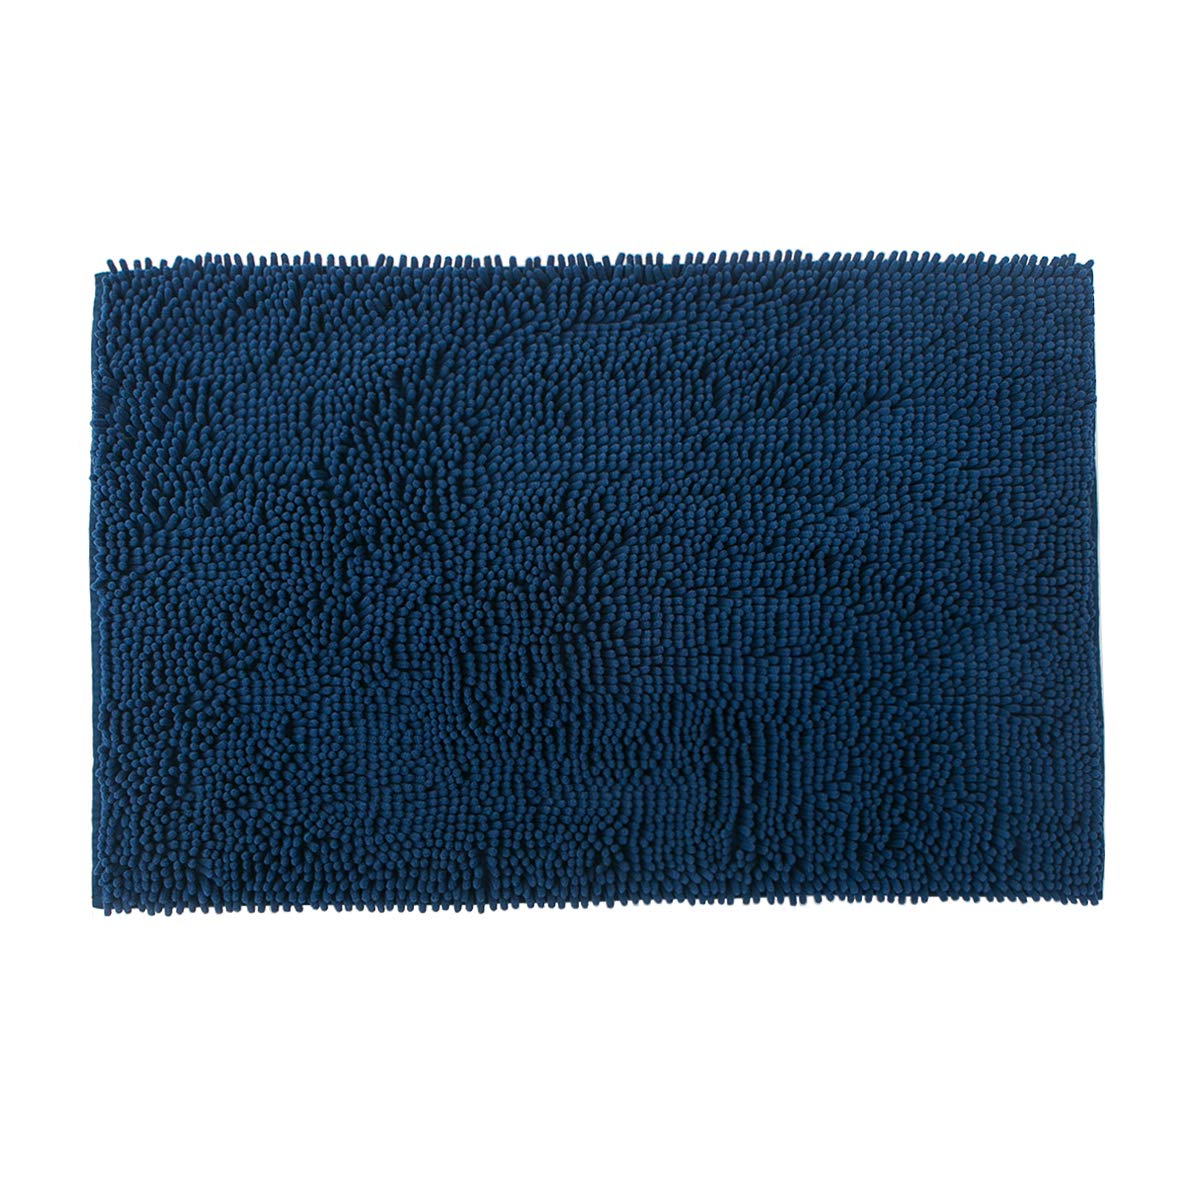 Famibay Bath Mat, Shaggy Chenille Bath Mat Microfiber Hotel Spa Bath Rug and Mat For Bathroom No slip Bath Tub and Shower High Absorbent Soft Large Accent Rugs, 23.6x35.4 Inches Navy